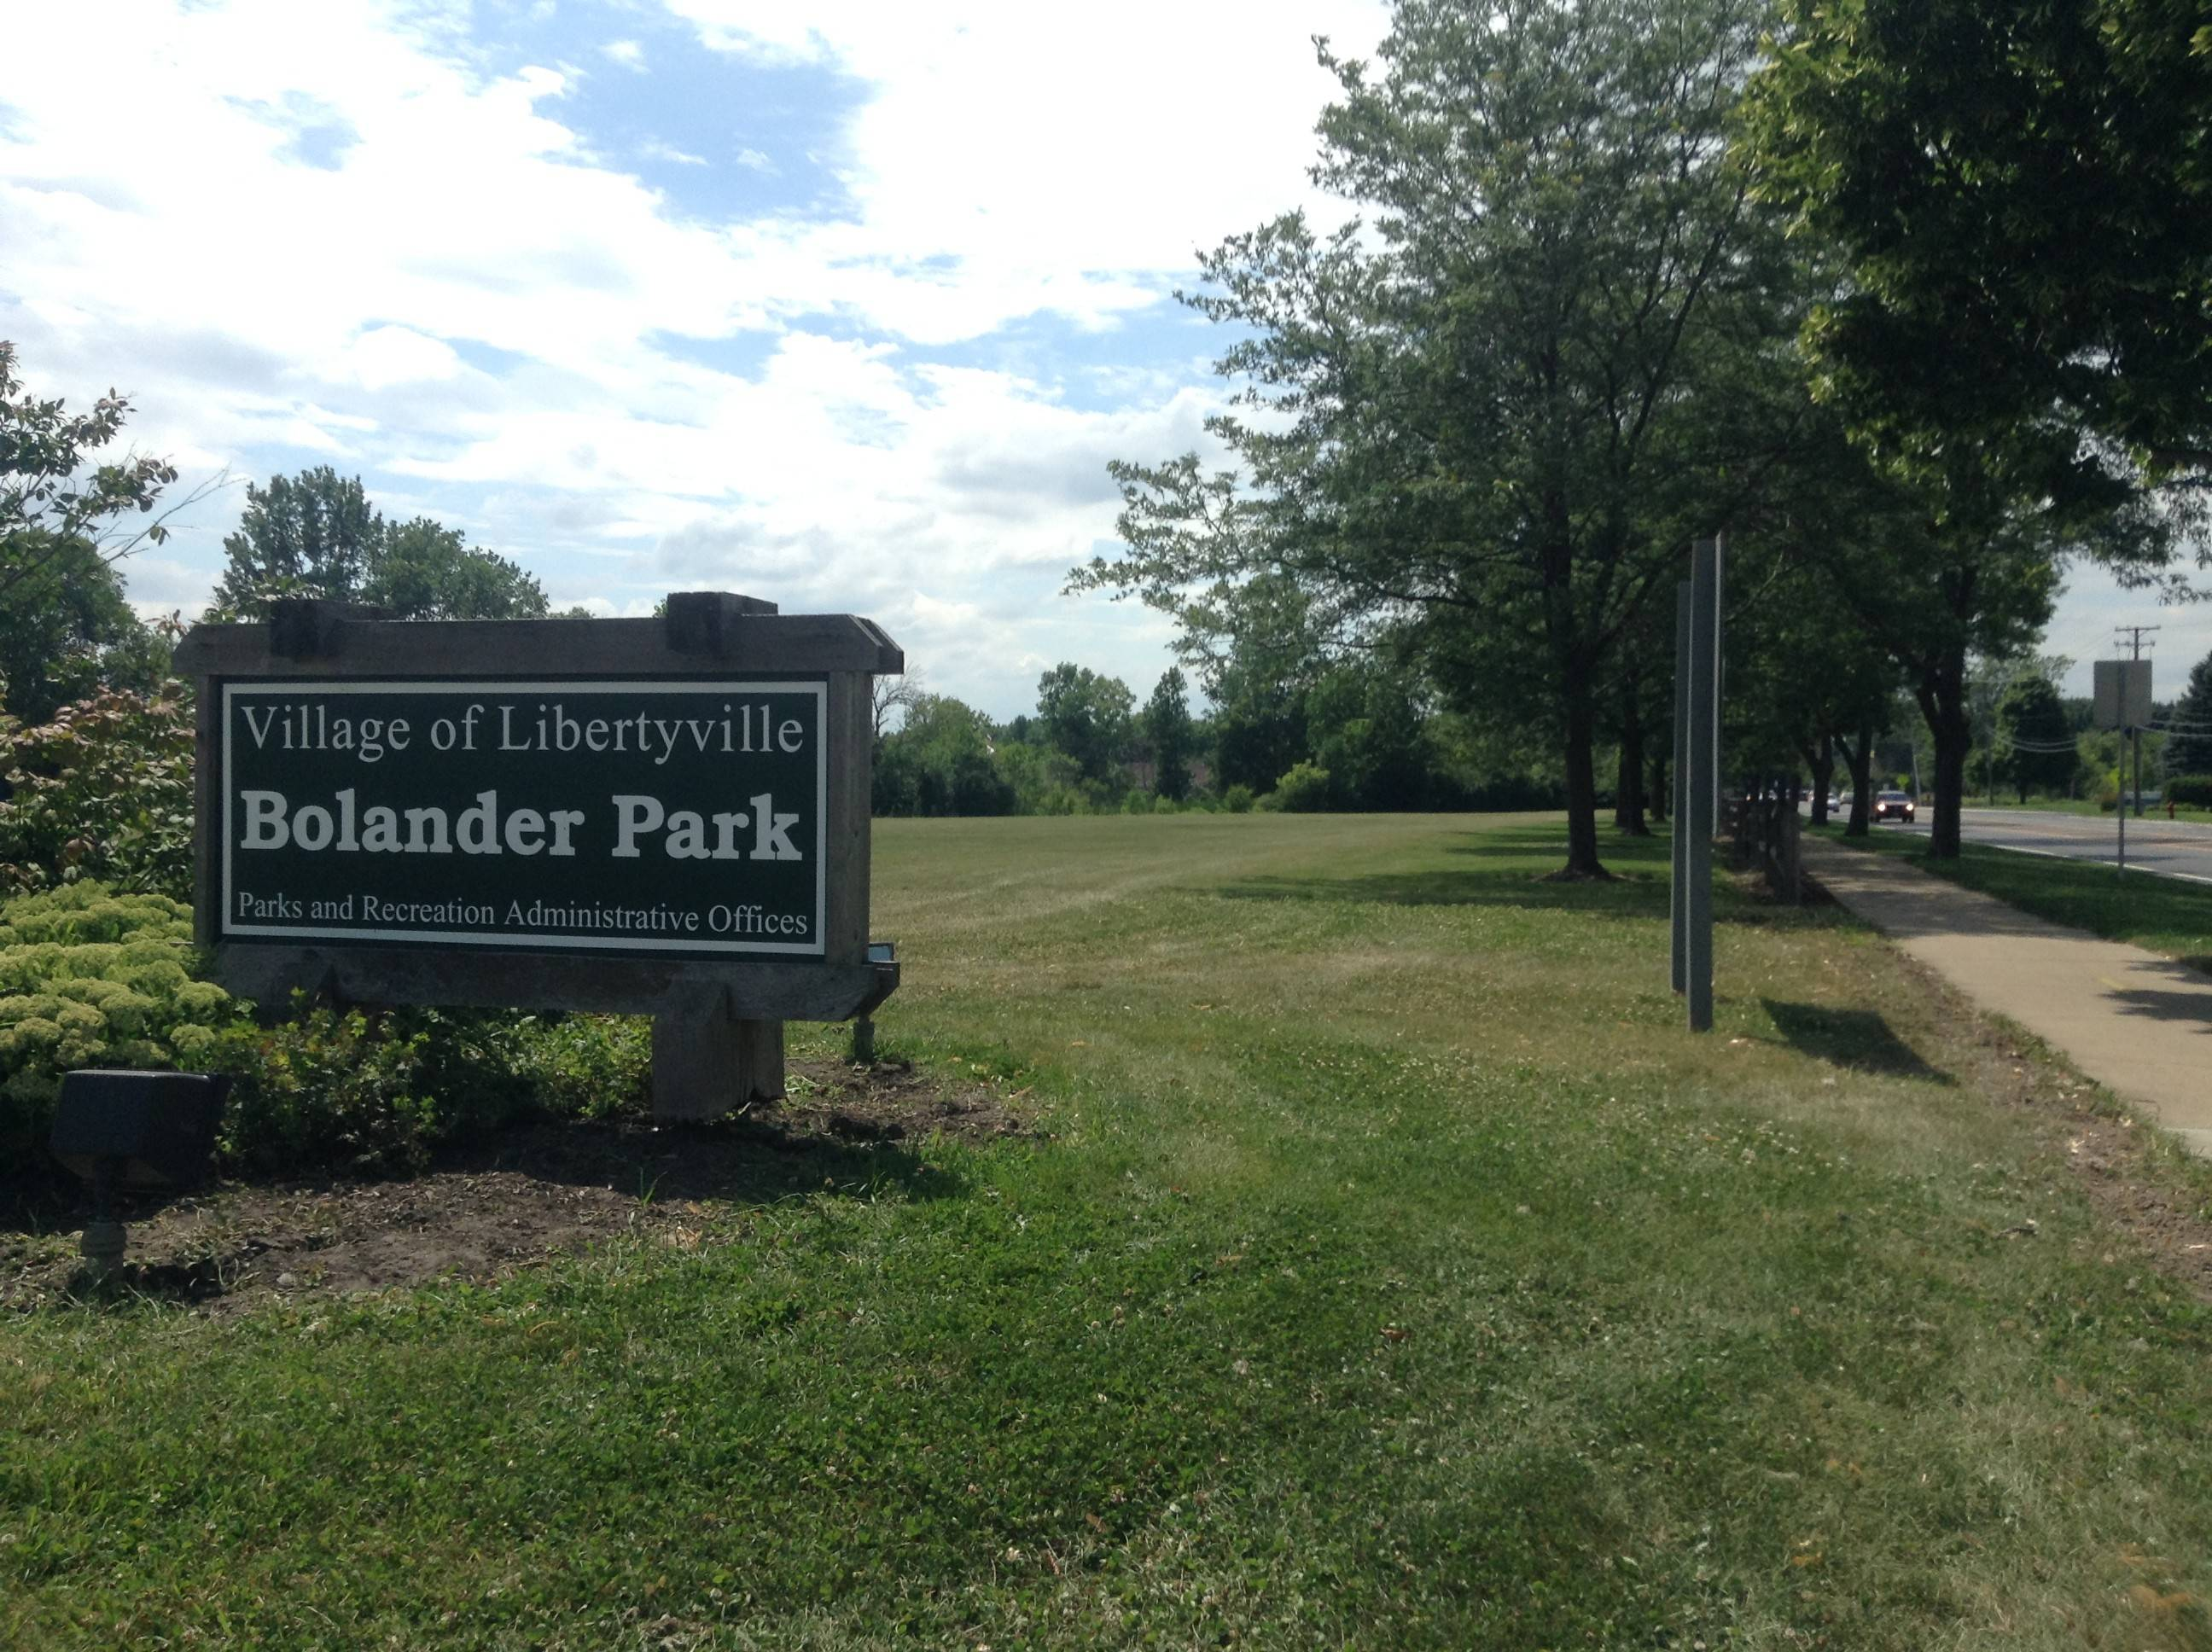 A townhouse development has been proposed to replace Bolander Park in Libertyville